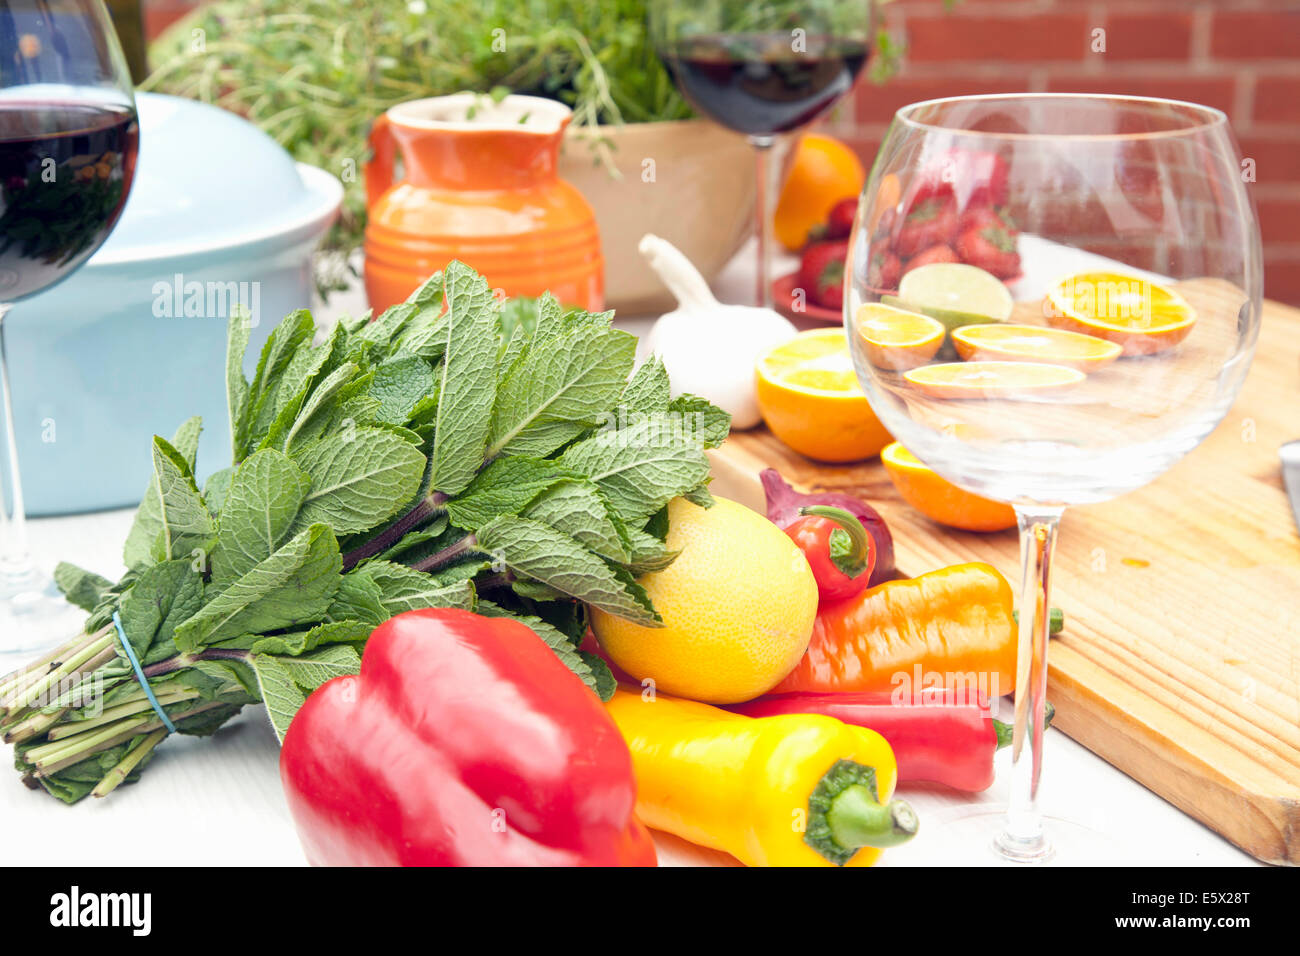 Still life of garden table with herbs, fruit, vegetables and red wine Stock Photo